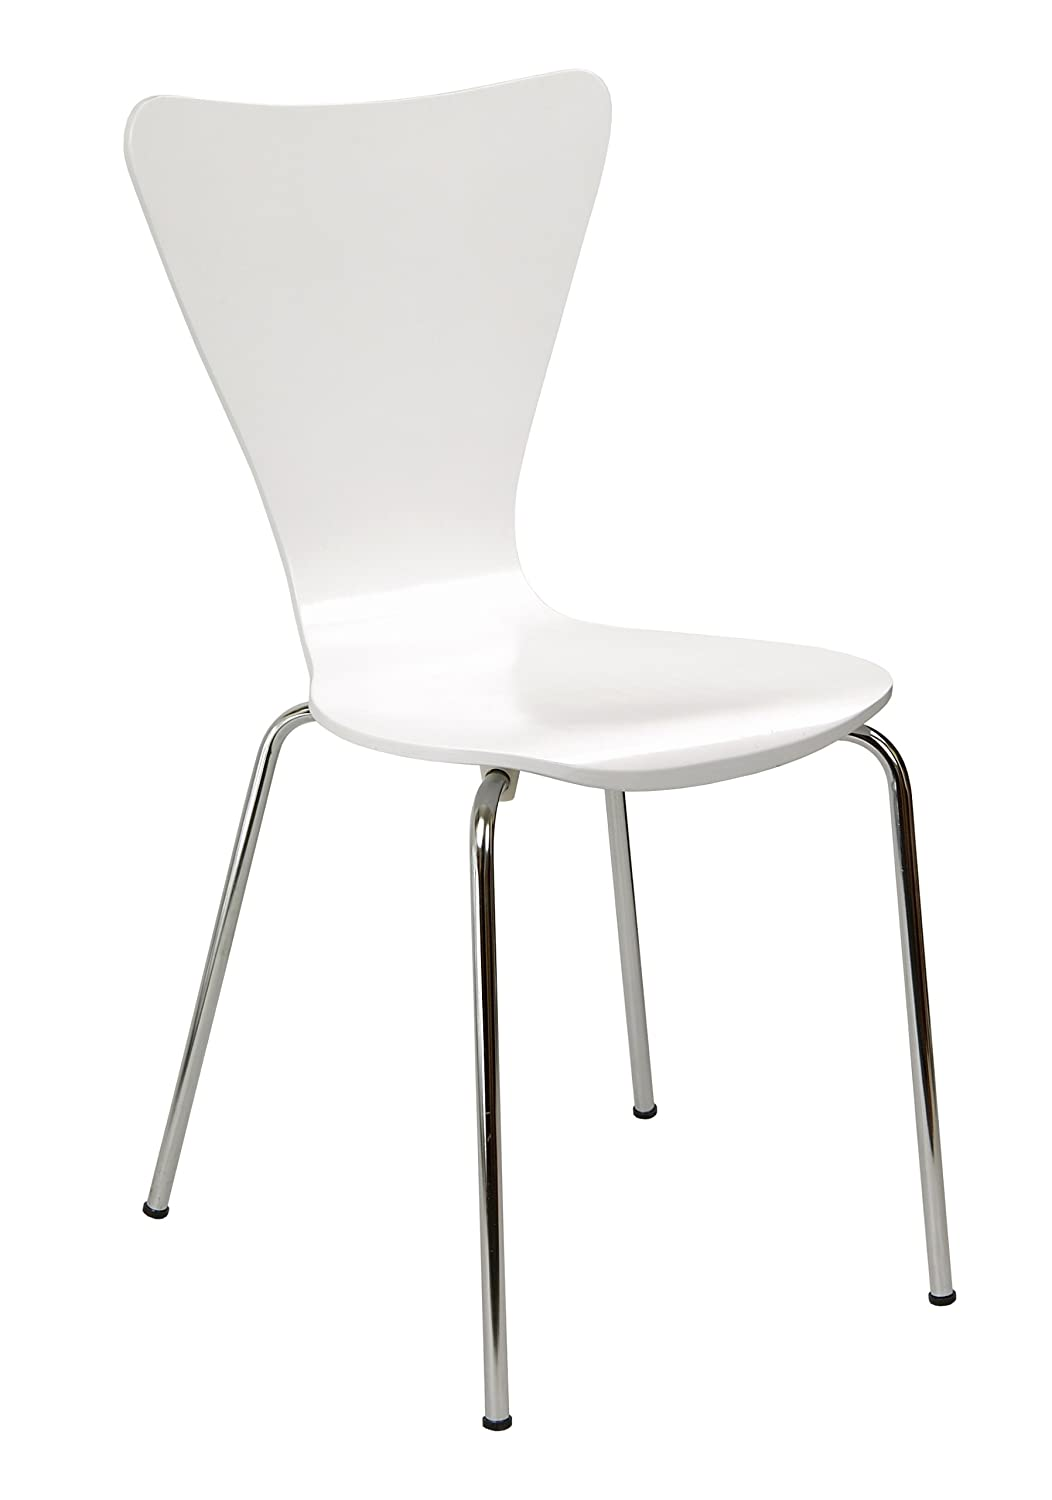 Legaré Furniture Modern Ergonomic Bent Plywood Chair for The Home, Office, or Work Space, White